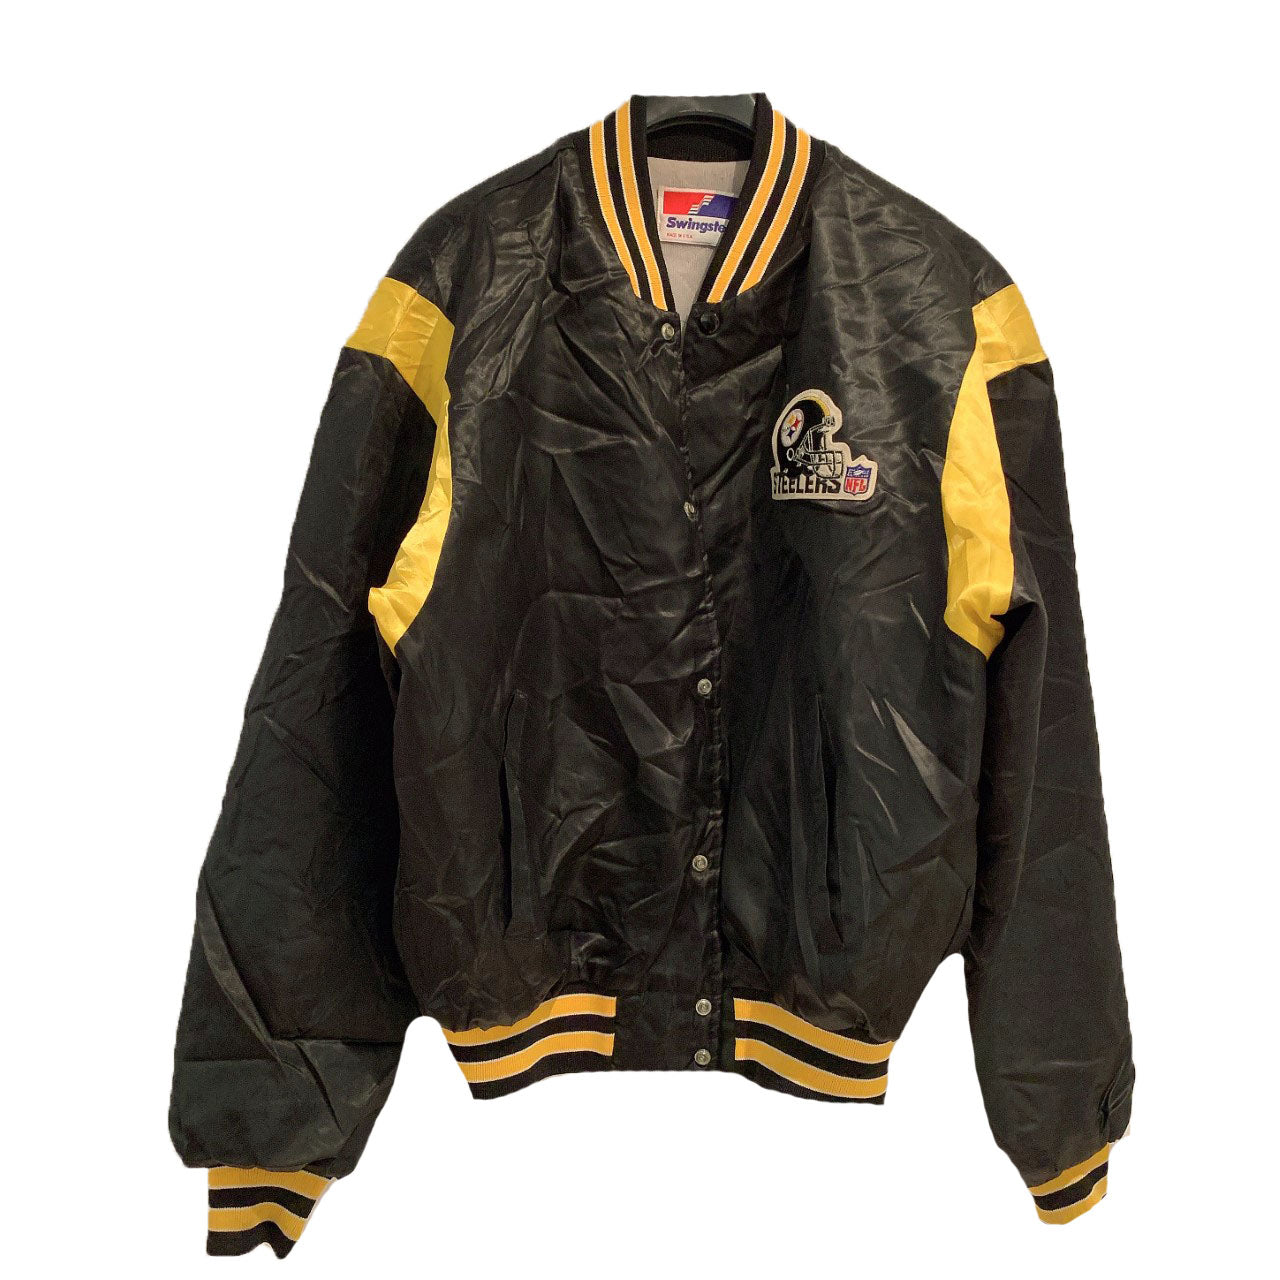 Steelers varsity -light weight